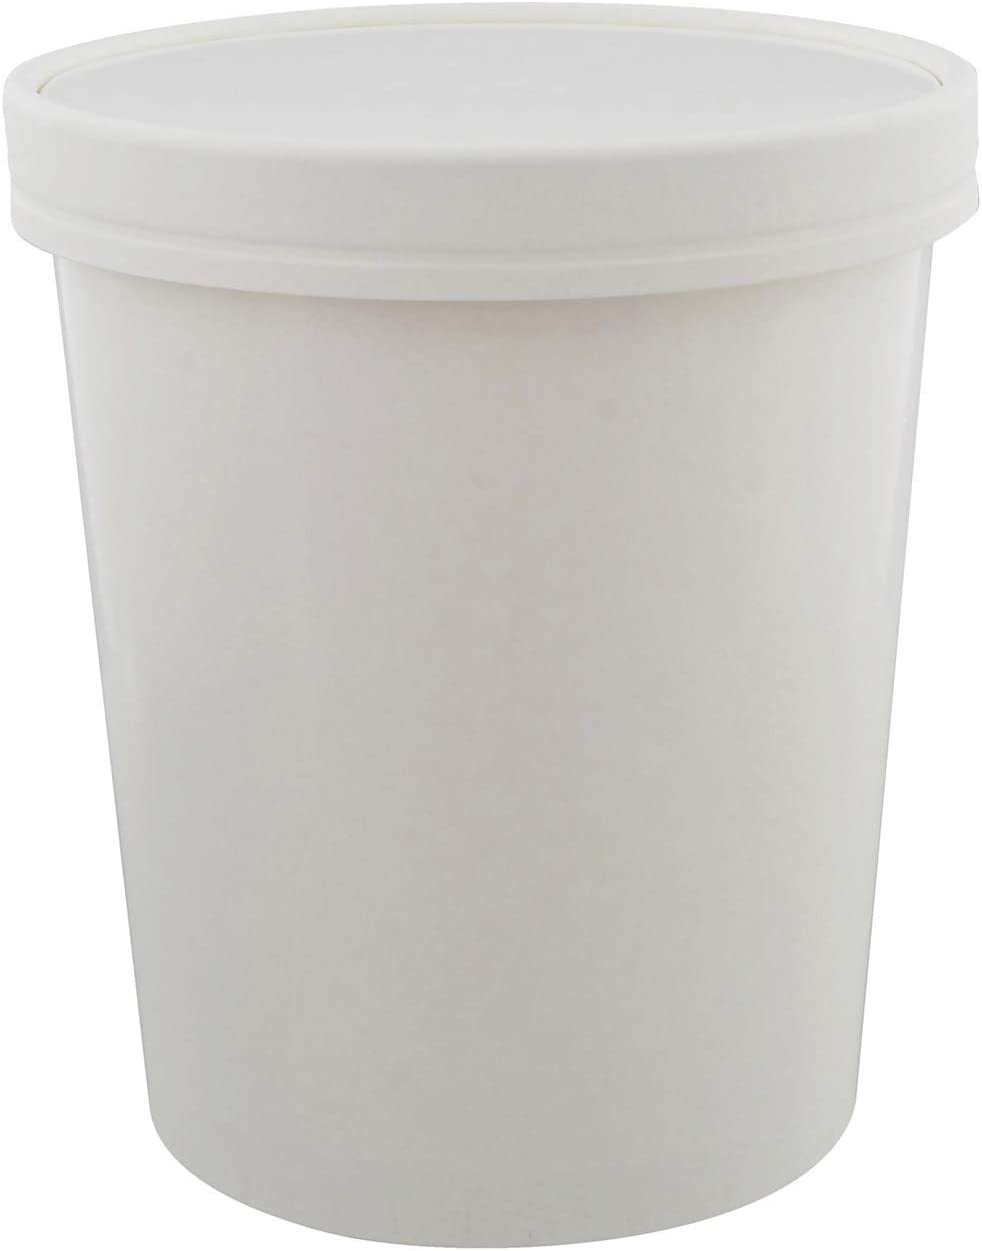 Spec101 Ice Cream Tubs with Lids - 32 Ounce Ice Cream Containers, Homemade Ice Cream Storage Containers, 50 Pack